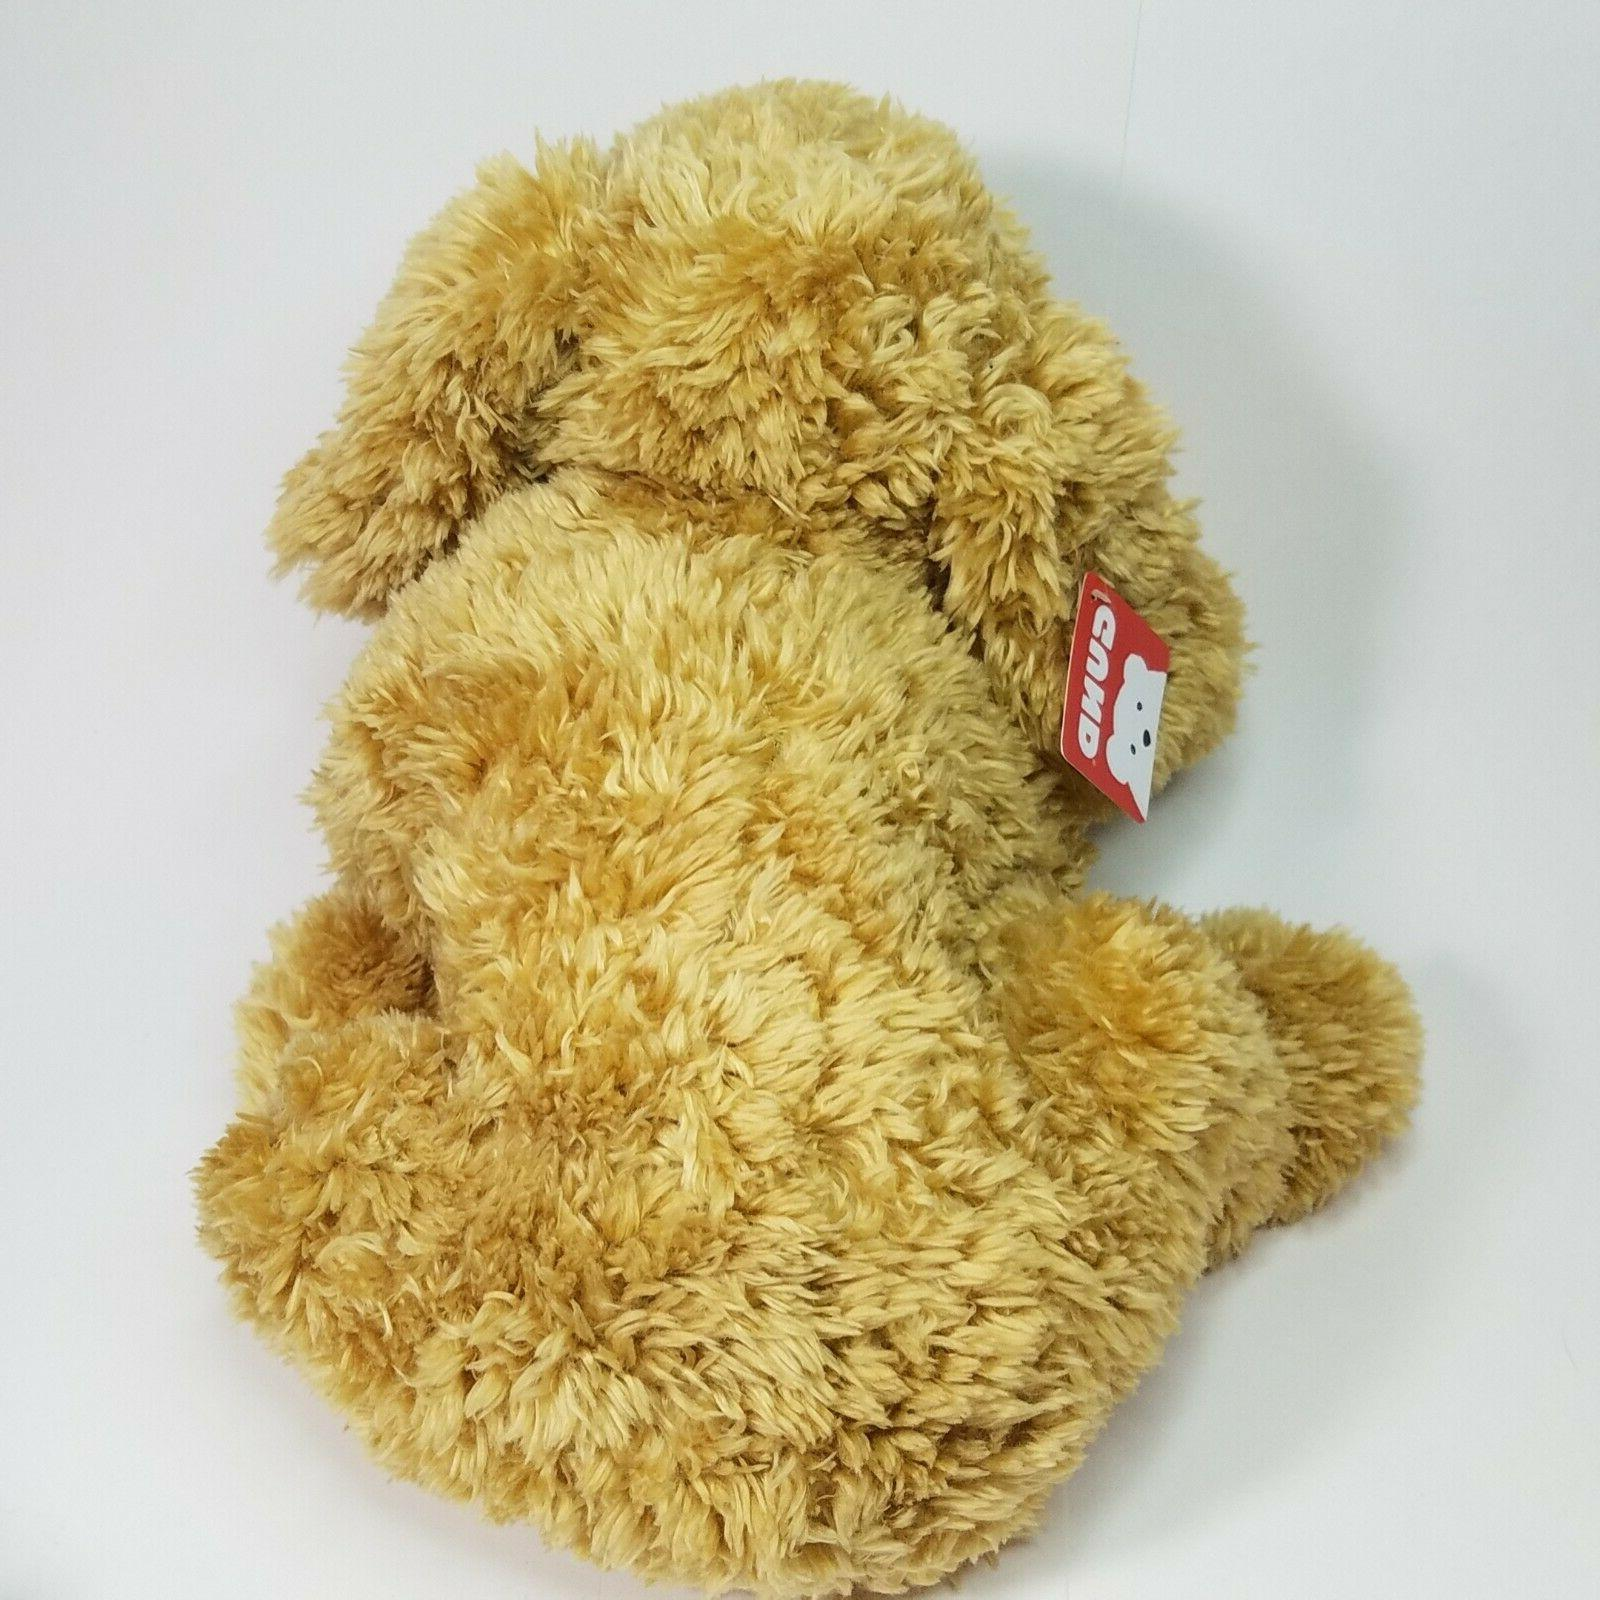 "GUND Dog Animal Plush, Beige, 14"" - New W/ -"